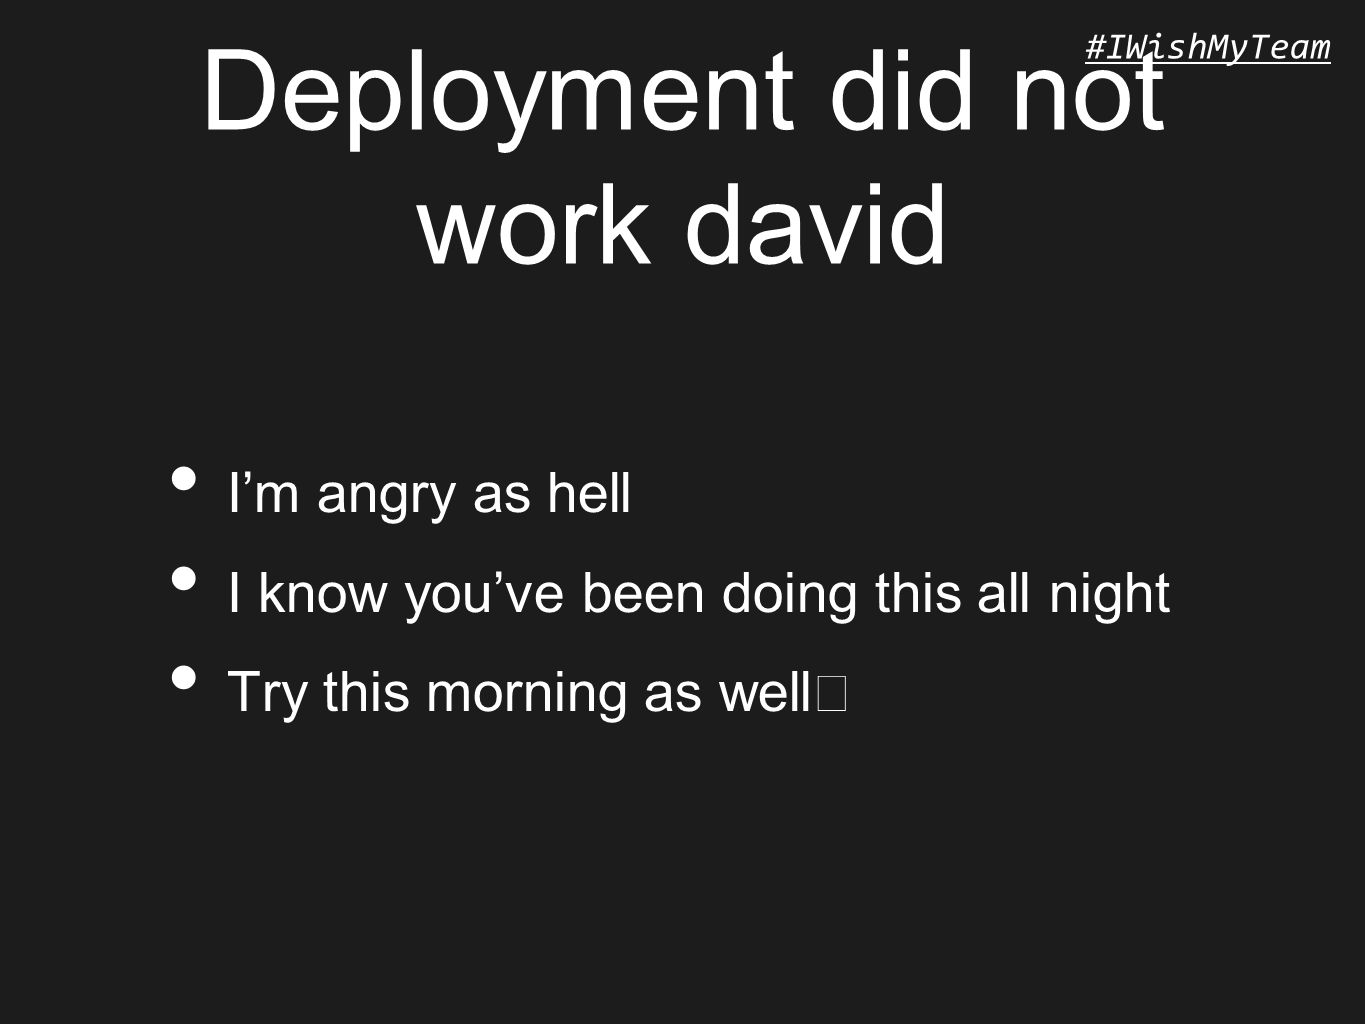 #IWishMyTeam Deployment did not work david I'm angry as hell I know you've been doing this all night Try this morning as well